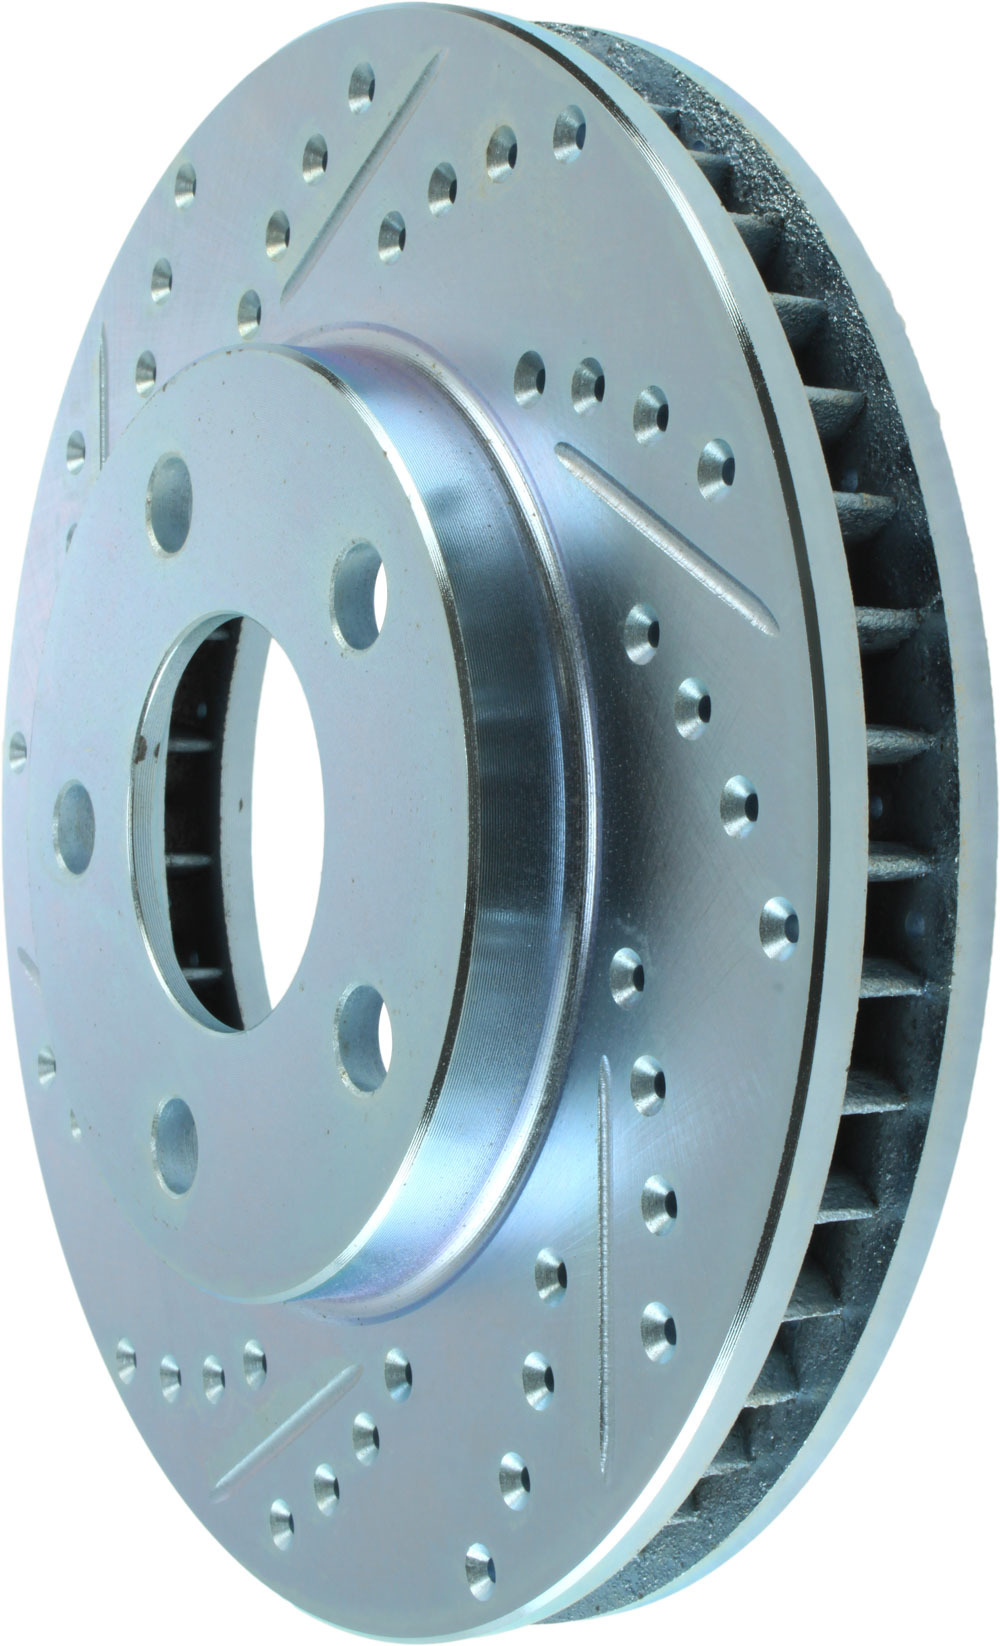 Stoptech 227.62057L Brake Rotor, Sport, Front, Driver Side, Drilled / Slotted, 278 mm OD, 32.3 mm Thick, 5 x 118 mm Bolt Pattern, Iron, Natural, Each